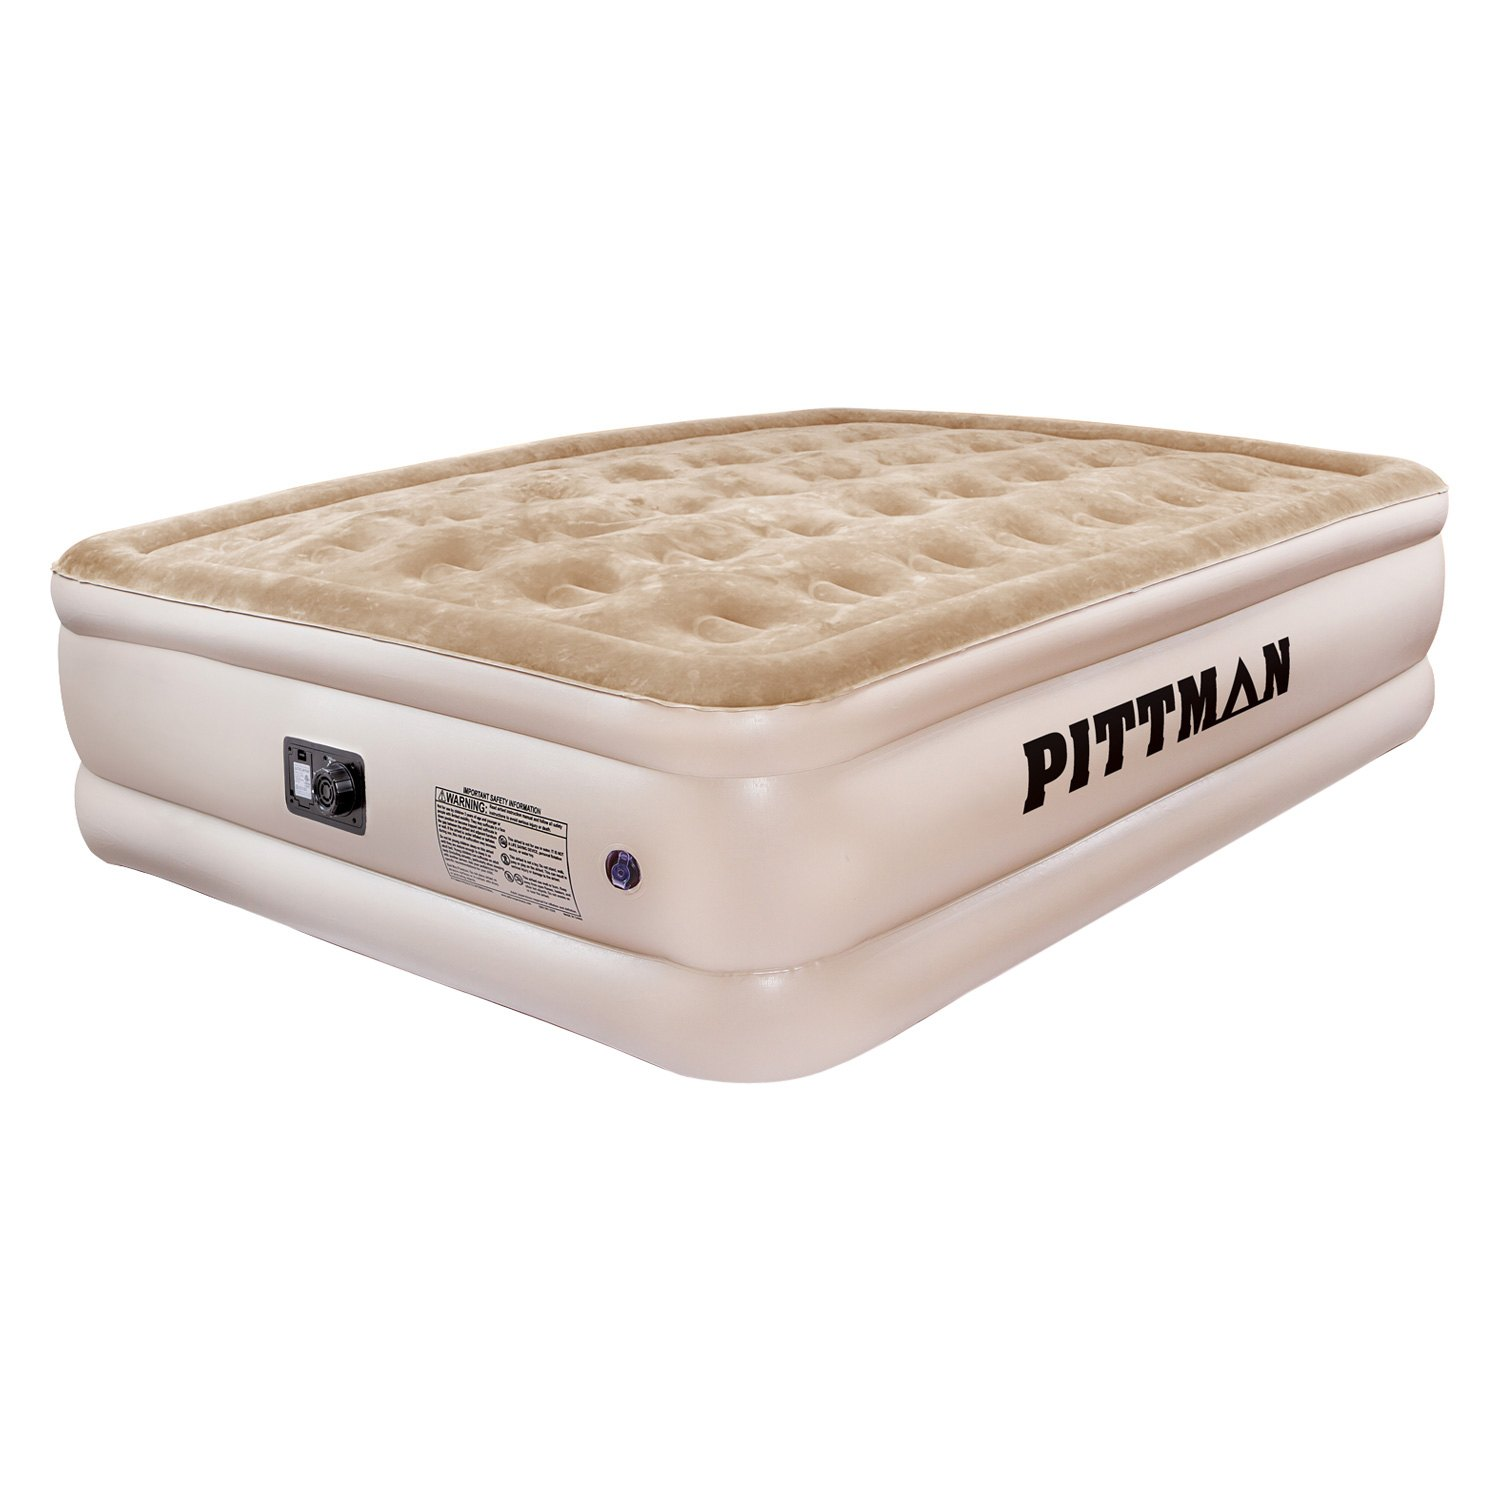 Pittman Outdoors PPI QCDH2 Queen fort Double High